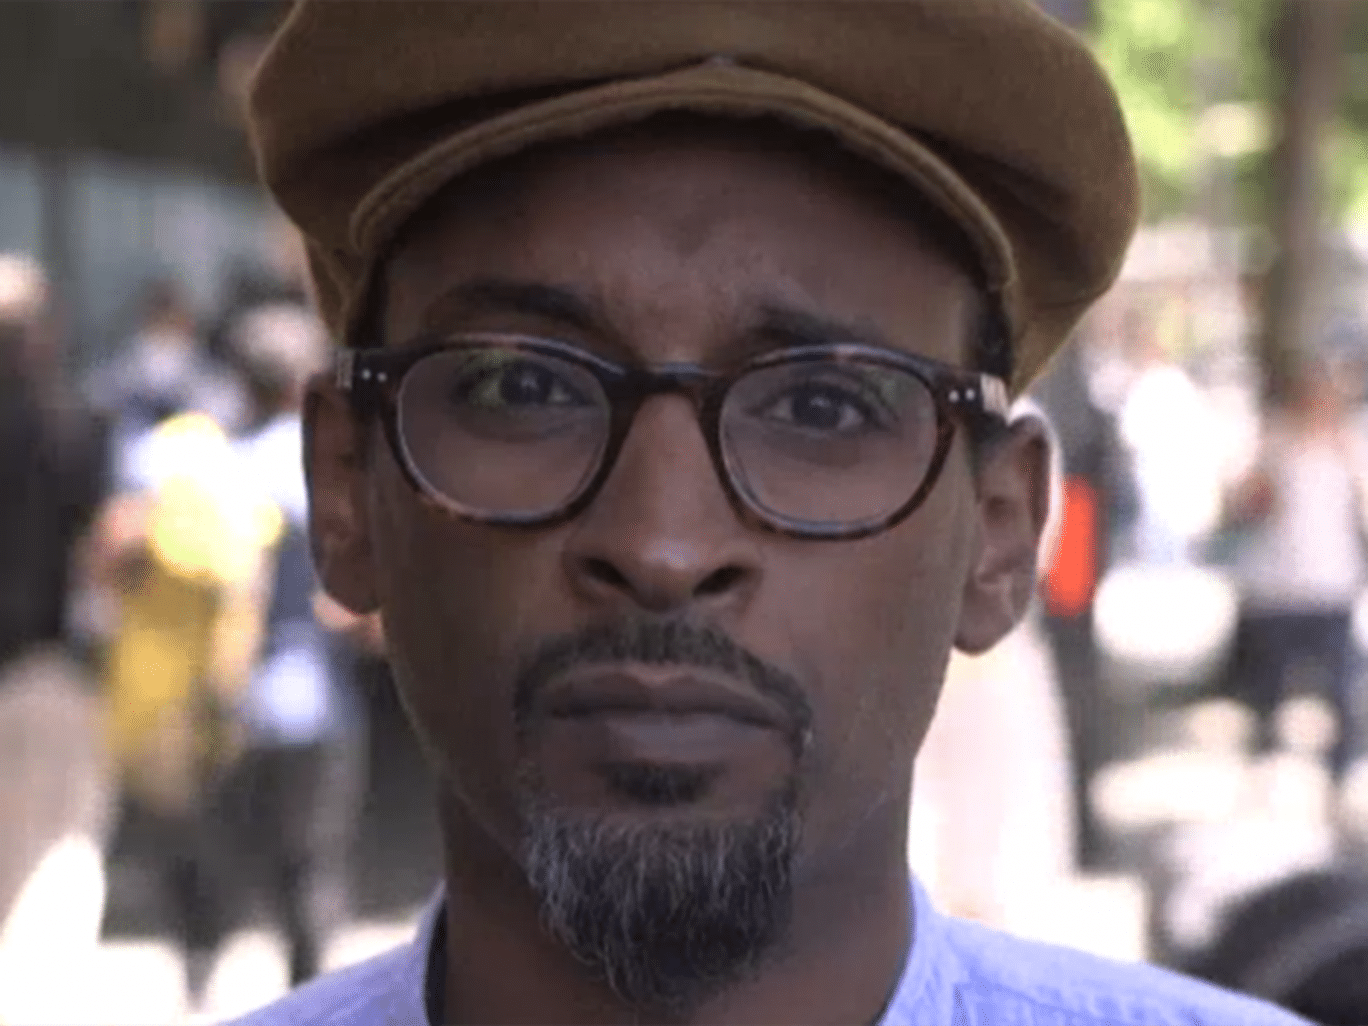 Gay Imam Plans to Open an LGBT-Friendly Mosque, Gay Imam Plans to Open an LGBT-Friendly Mosque